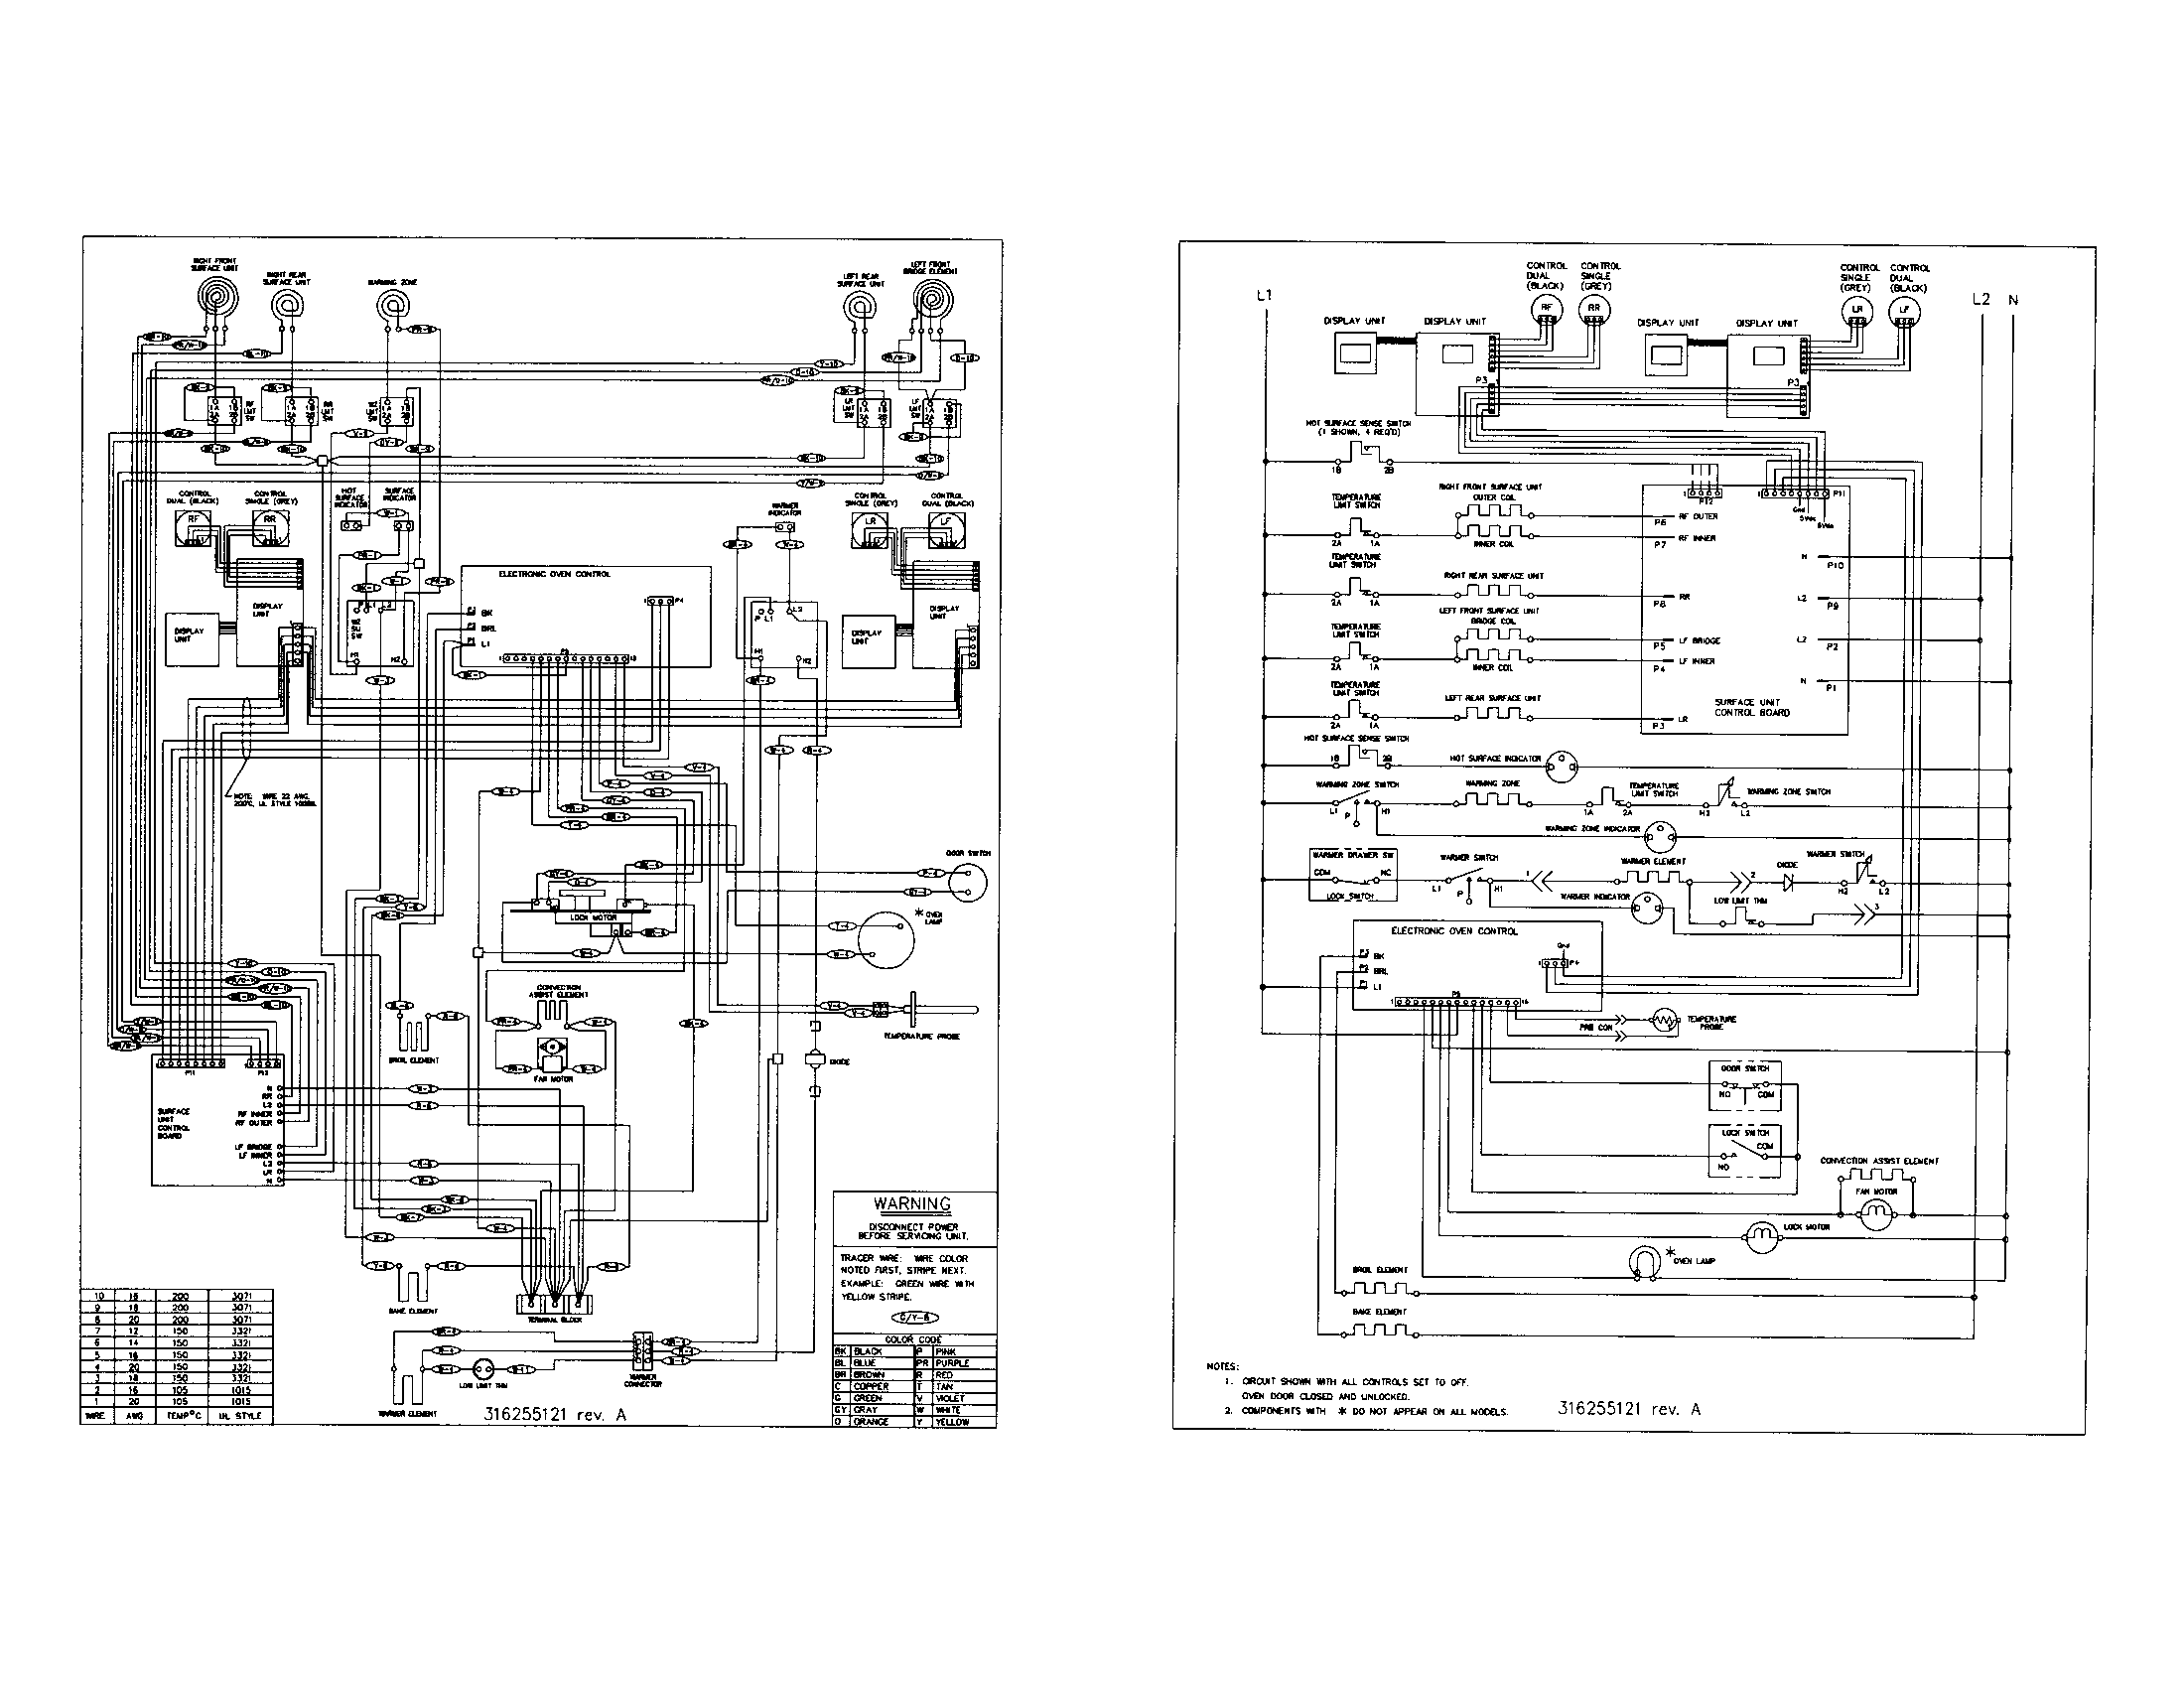 Gy6 Wiring Diagram further Mercedes Benz in addition Kubota L35 Oil Filter Wiring Diagrams furthermore Appliance as well Husqvarna Lawn Tractor Wiring Diagram. on mahindra wiring diagrams